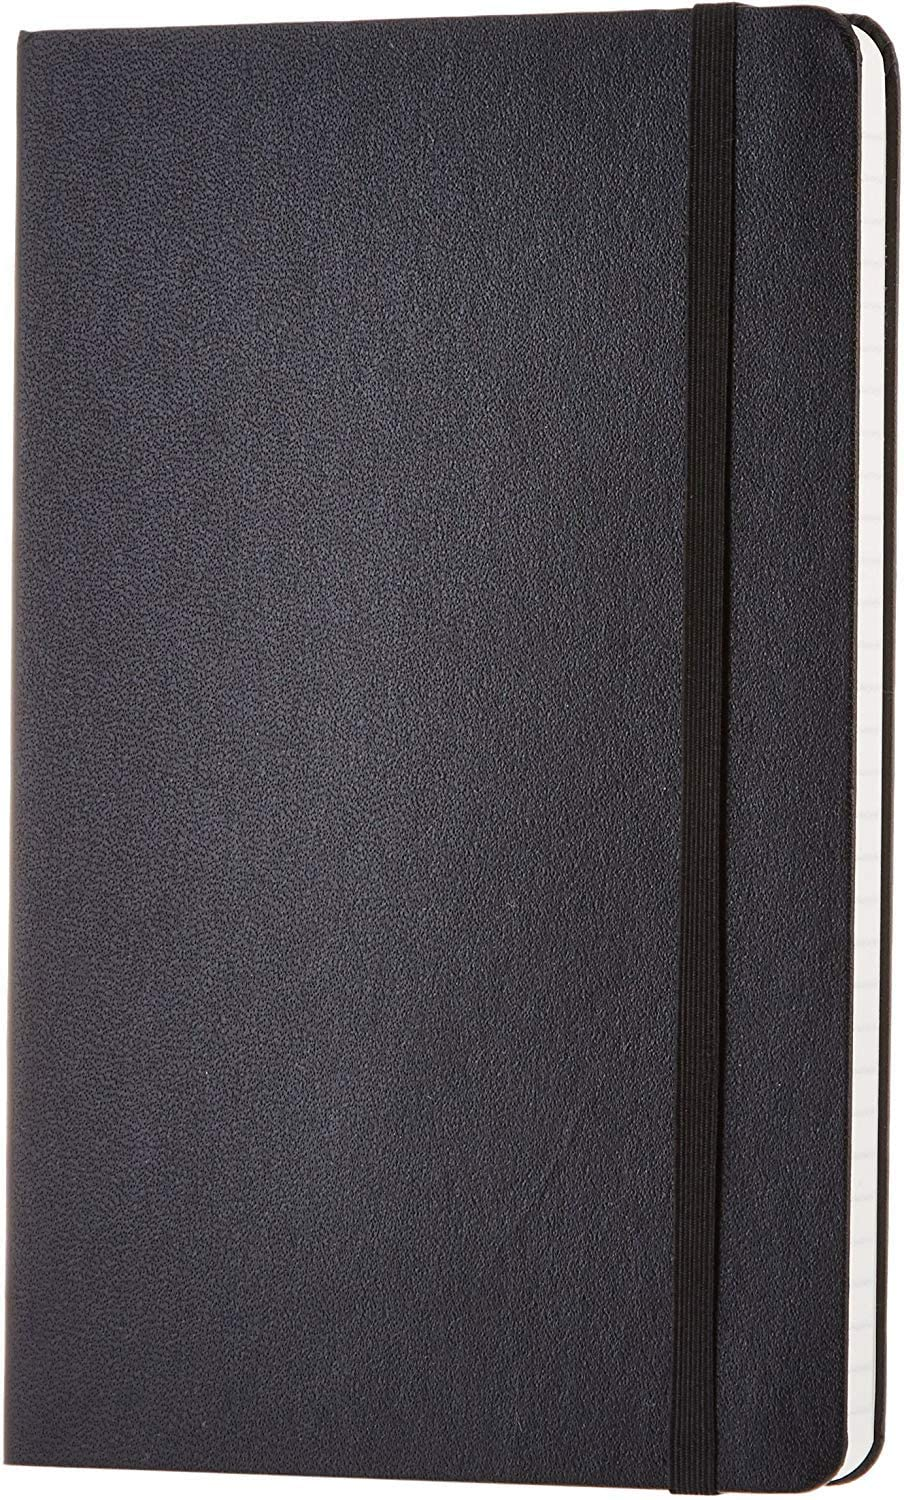 DHgateBasics Classic Lined Notebook, 240 Pages, Hardcover - Ruled